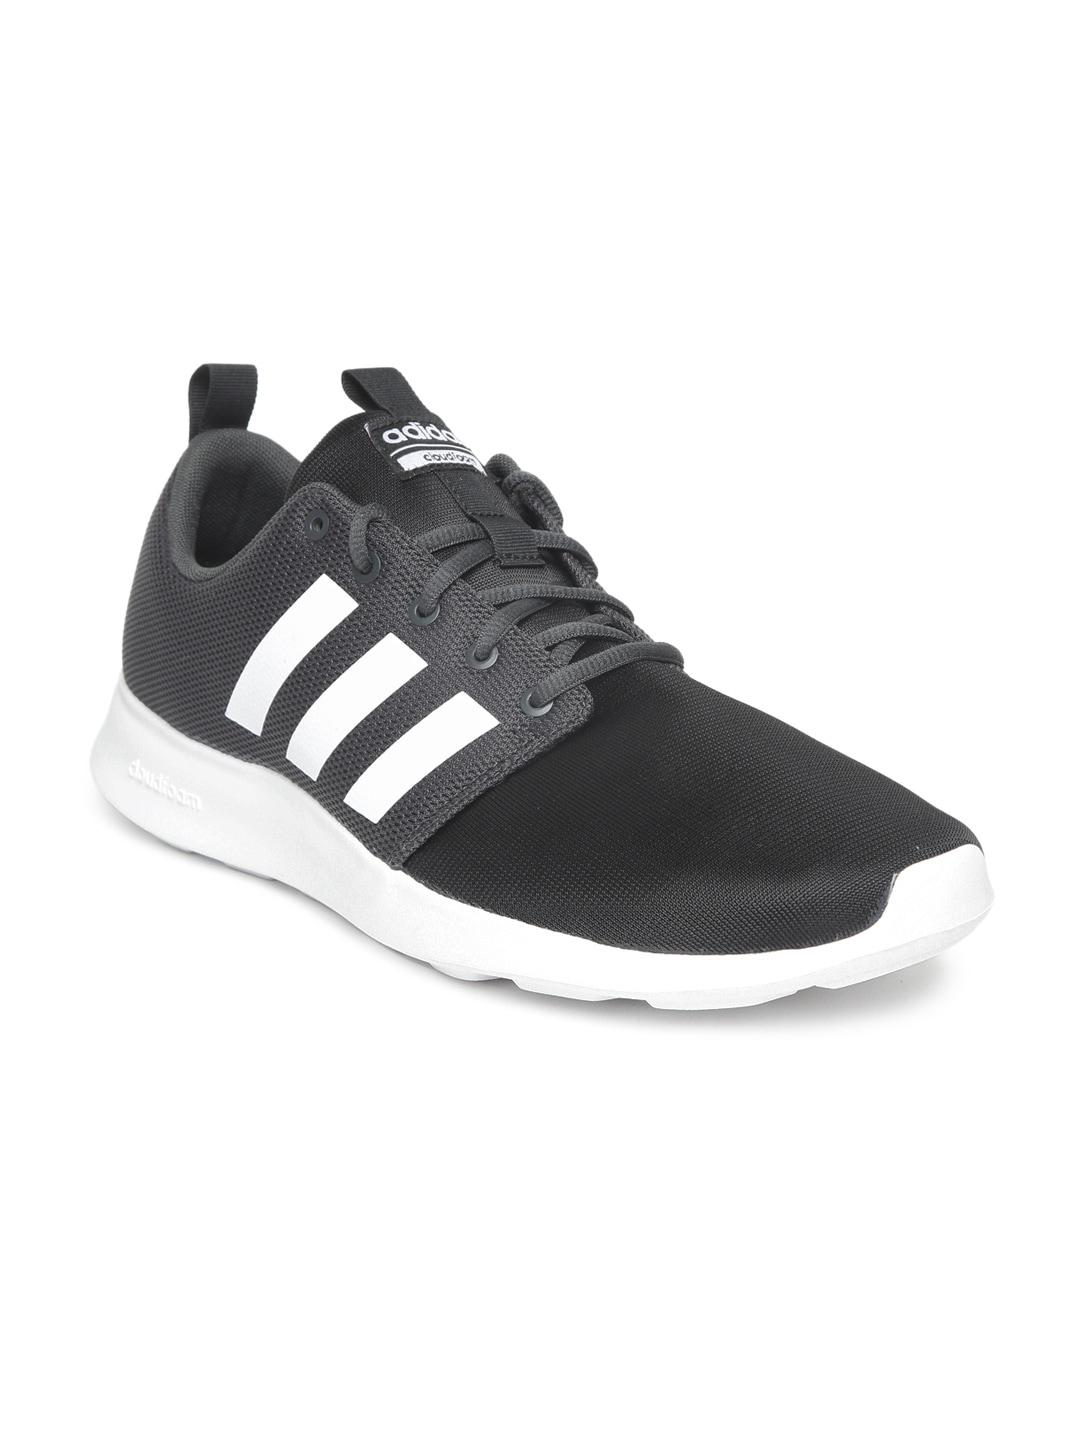 b5b1a7e789f Adidas Cf Swift Racer Black Running Shoes for Men online in India at ...